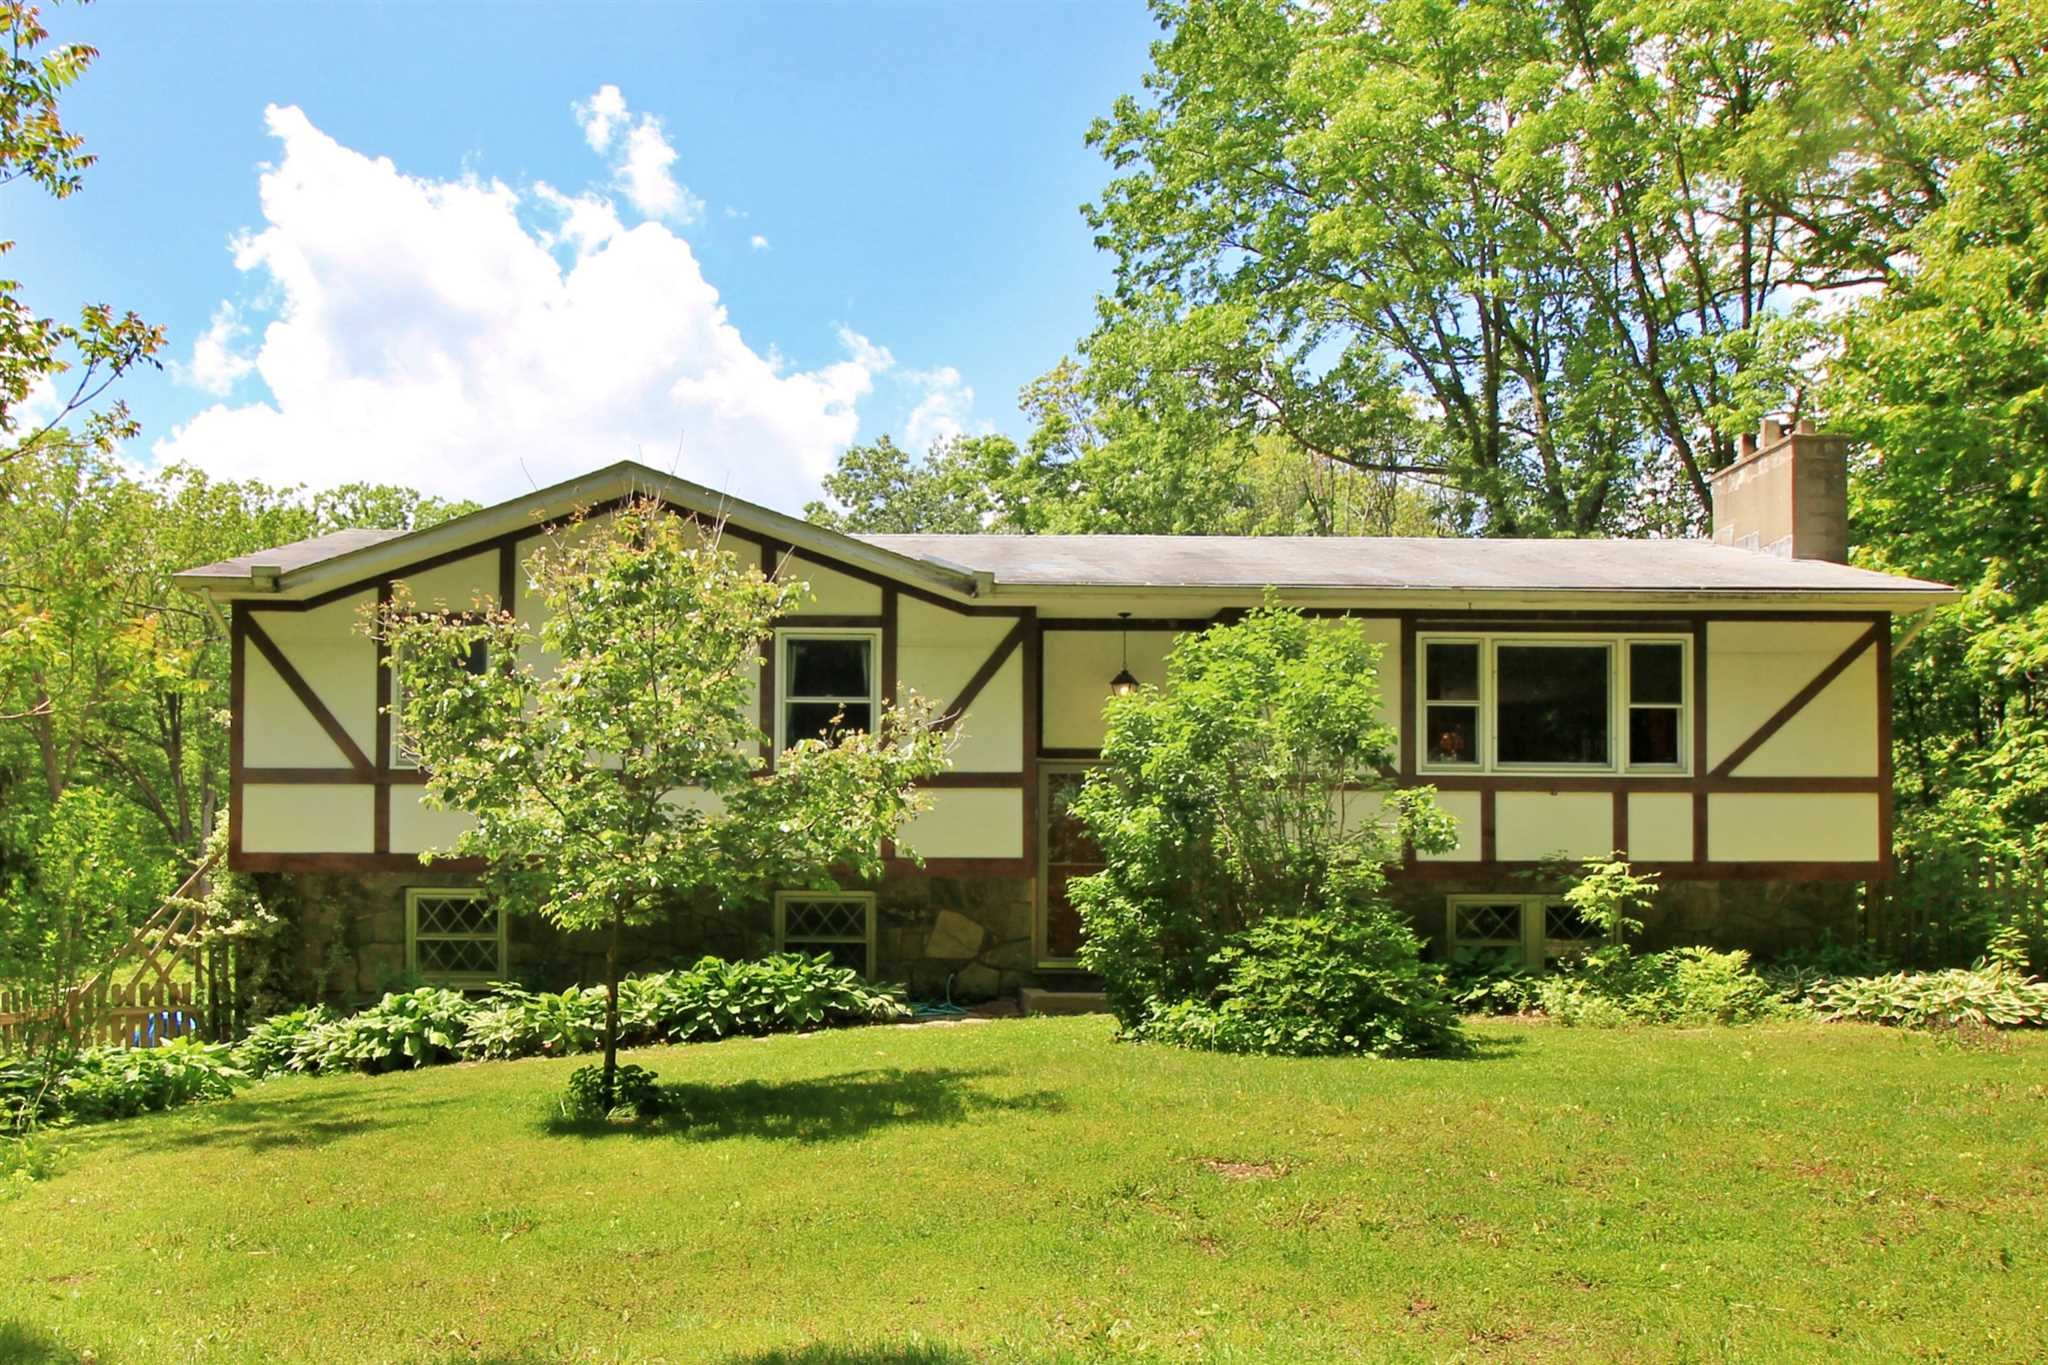 Single Family Home for Sale at 110 RIDGE Road 110 RIDGE Road Dover Plains, New York 12522 United States